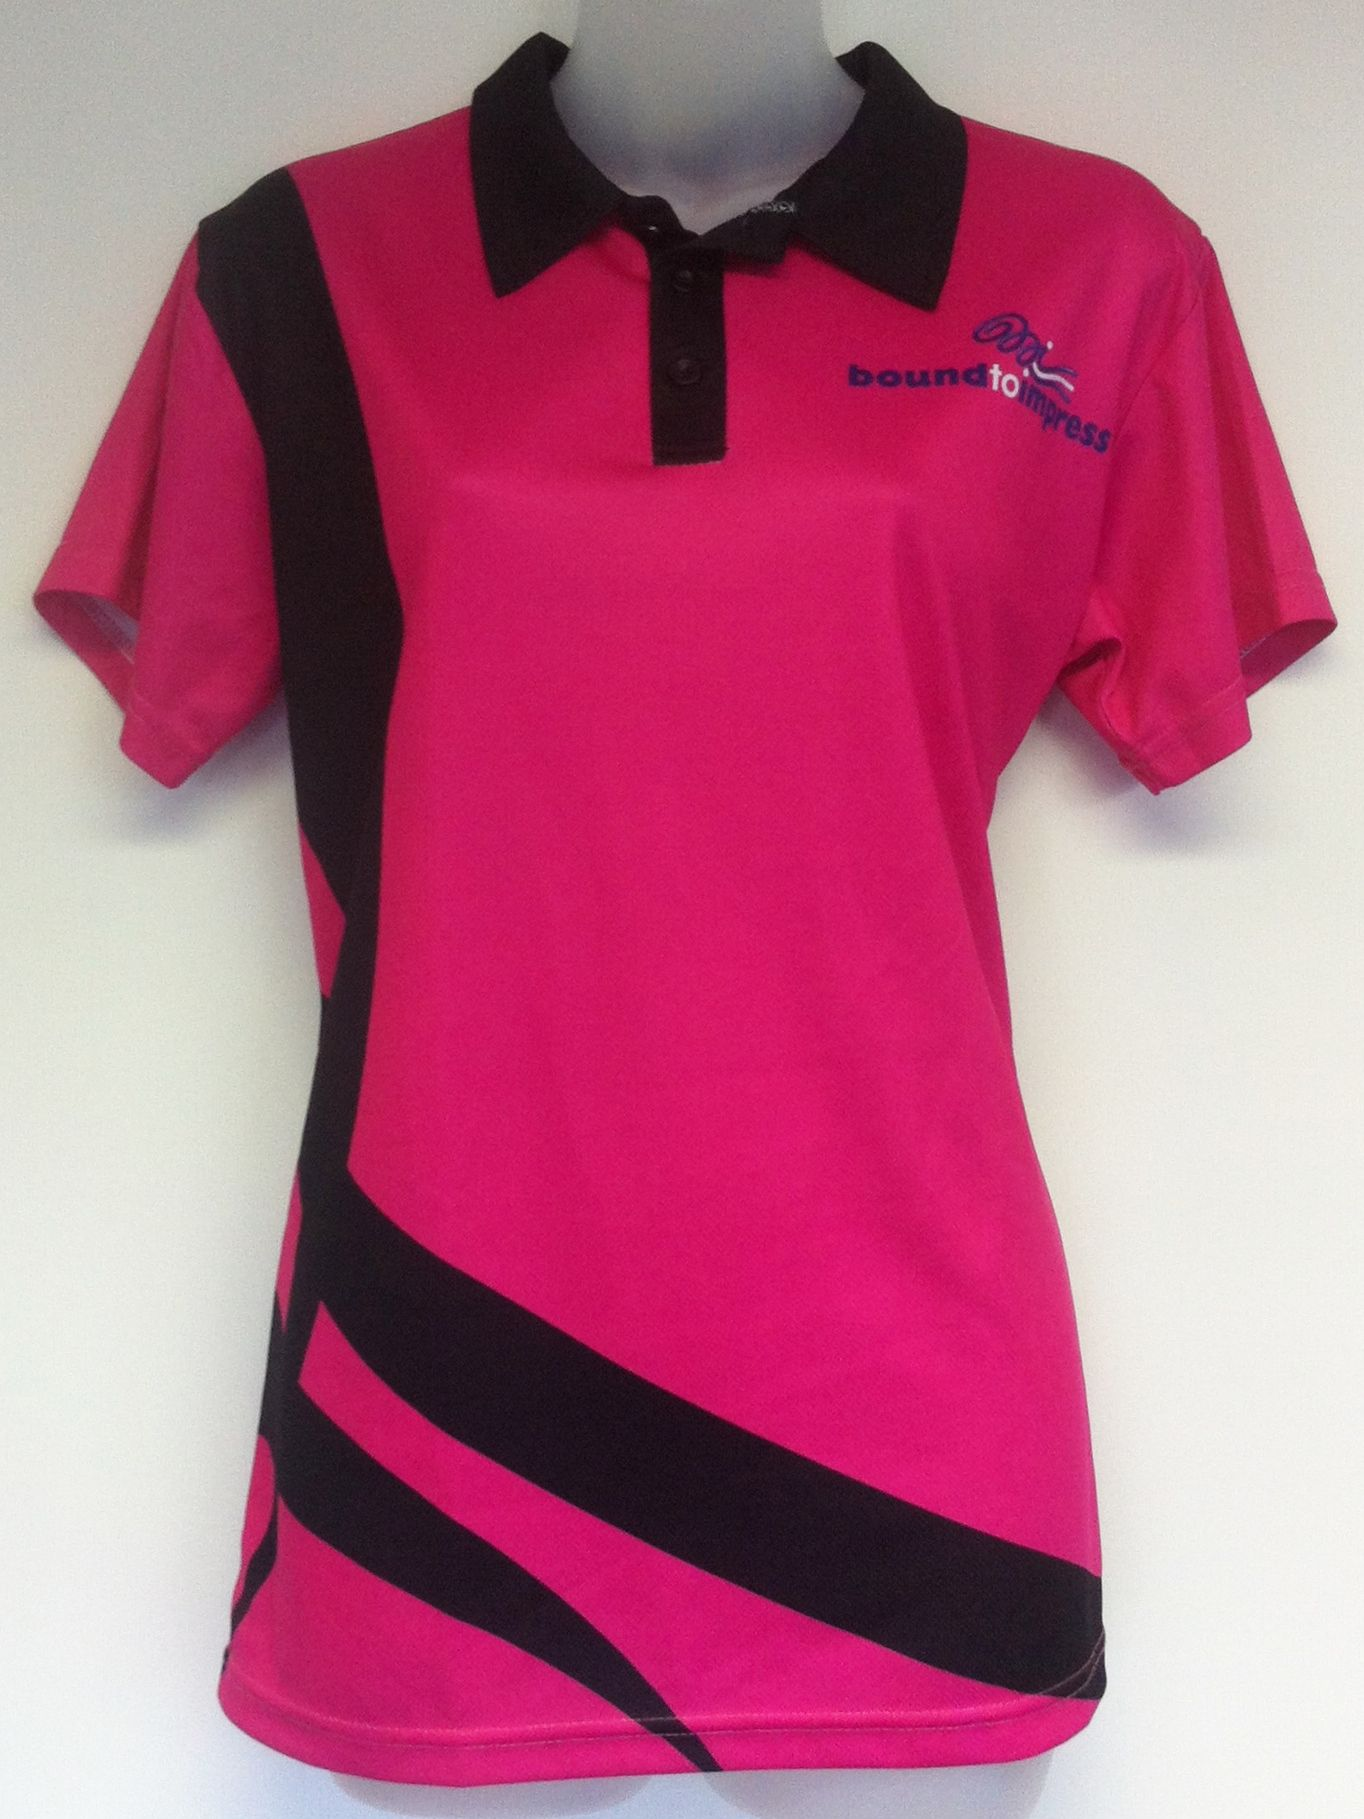 Design t shirt netball - Here Is A Pretty Pink Sublimated Polo Shirt Design For The Team At Bound To Impress